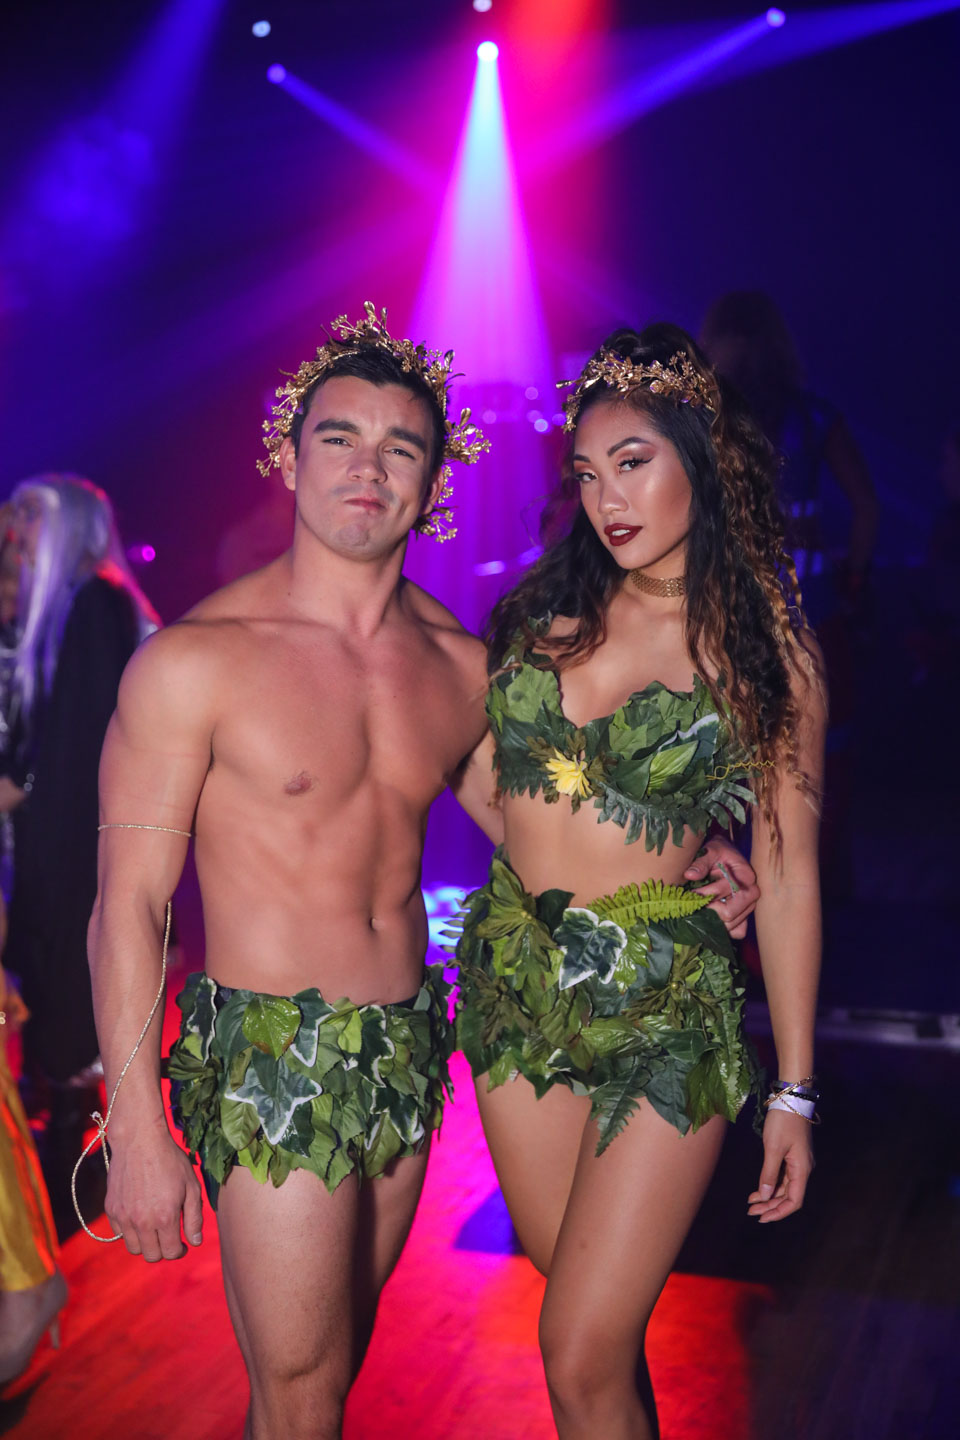 Adam & Eve costume